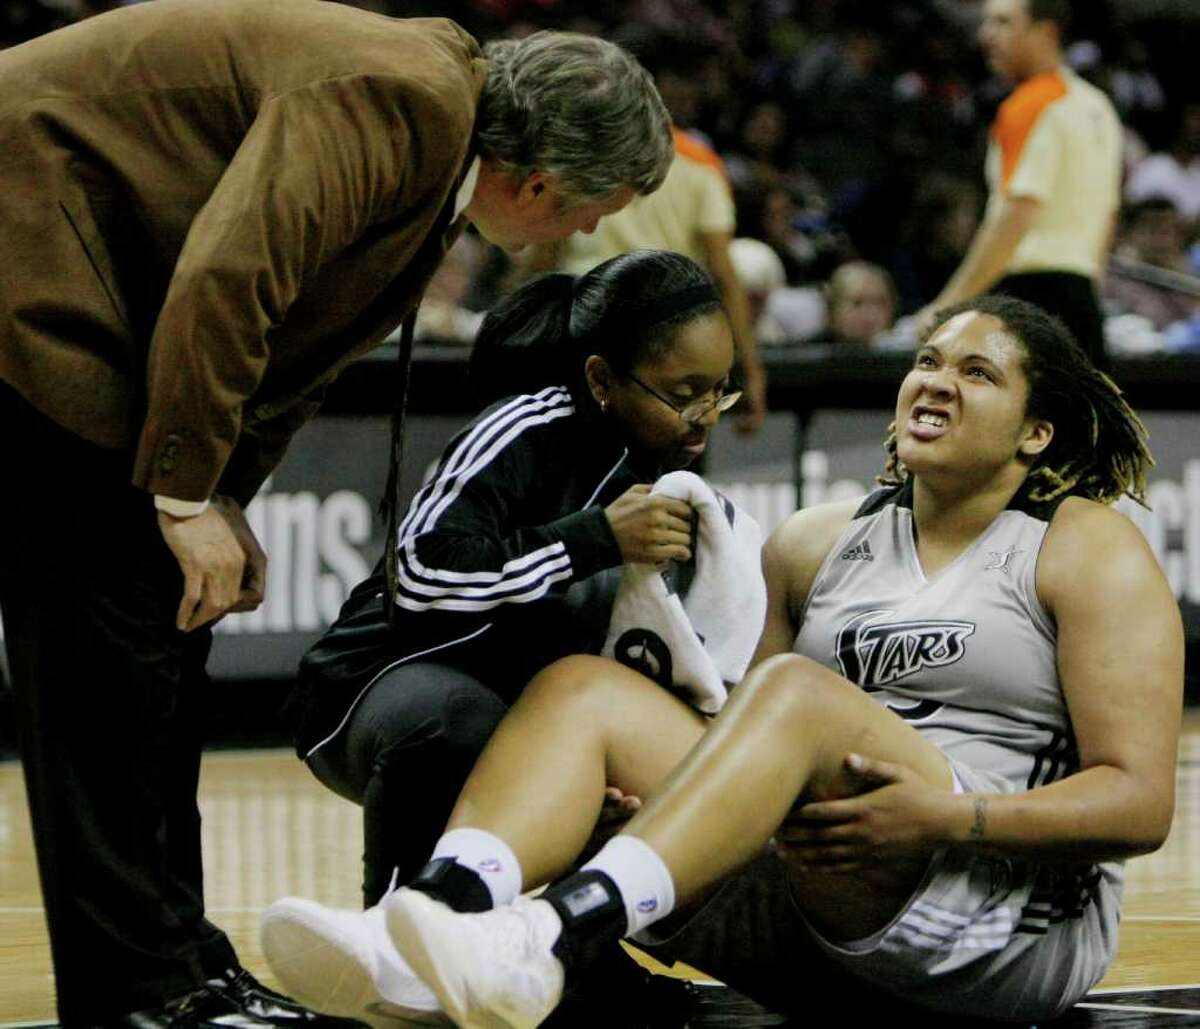 Silver Stars head coach Dan Hughes, left, looks on as Stars' Danielle Adams, right, is checked out after suffering an injury during the first half of a WNBA basketball game against the Washington Mystics, Saturday, Sept. 10, 2011, in San Antonio.